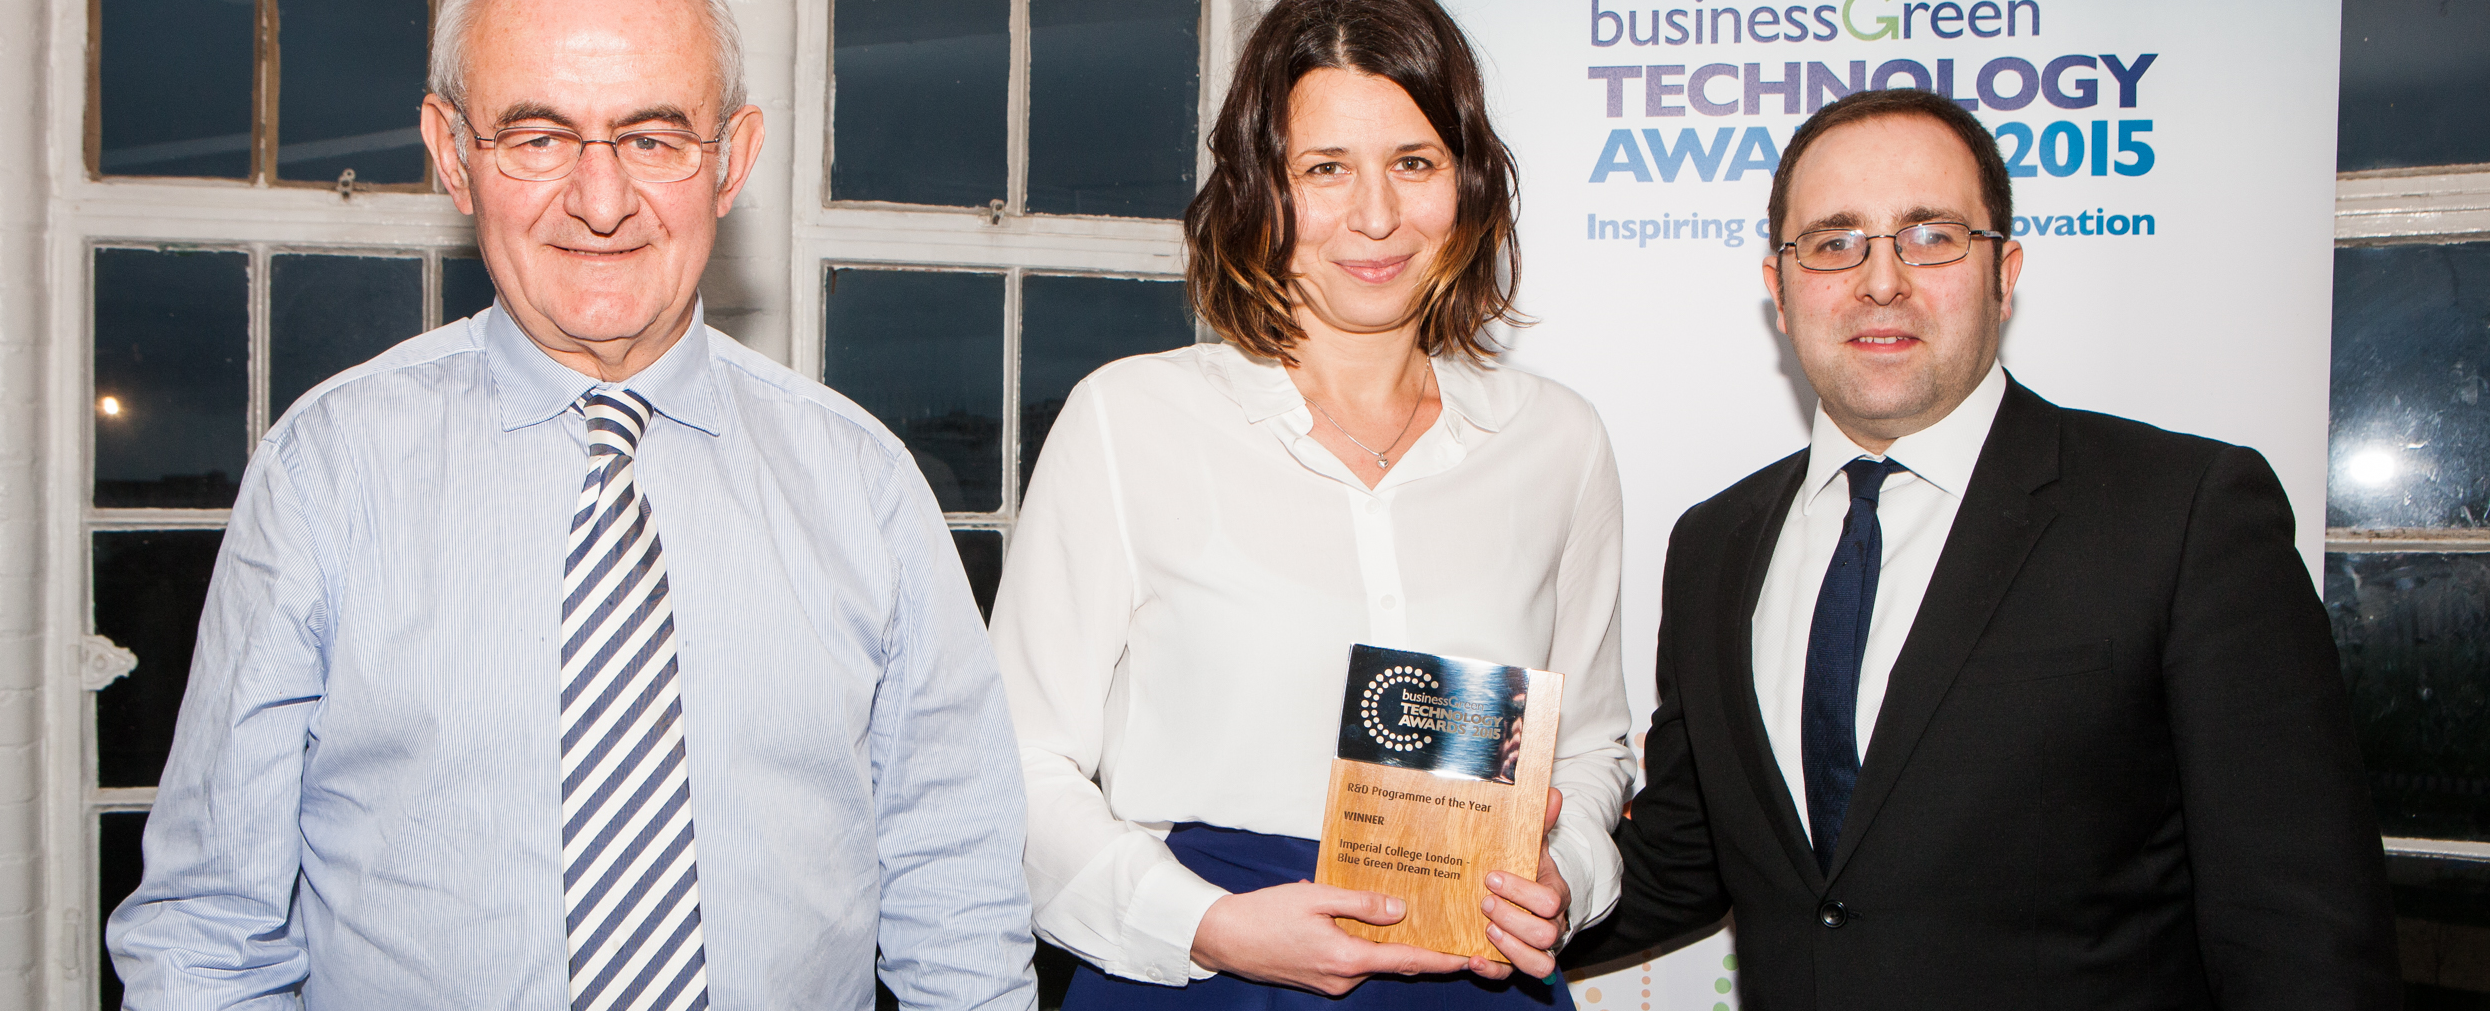 Blue Green Dream scoops 1st prize at the BusinessGreen Technology Awards!